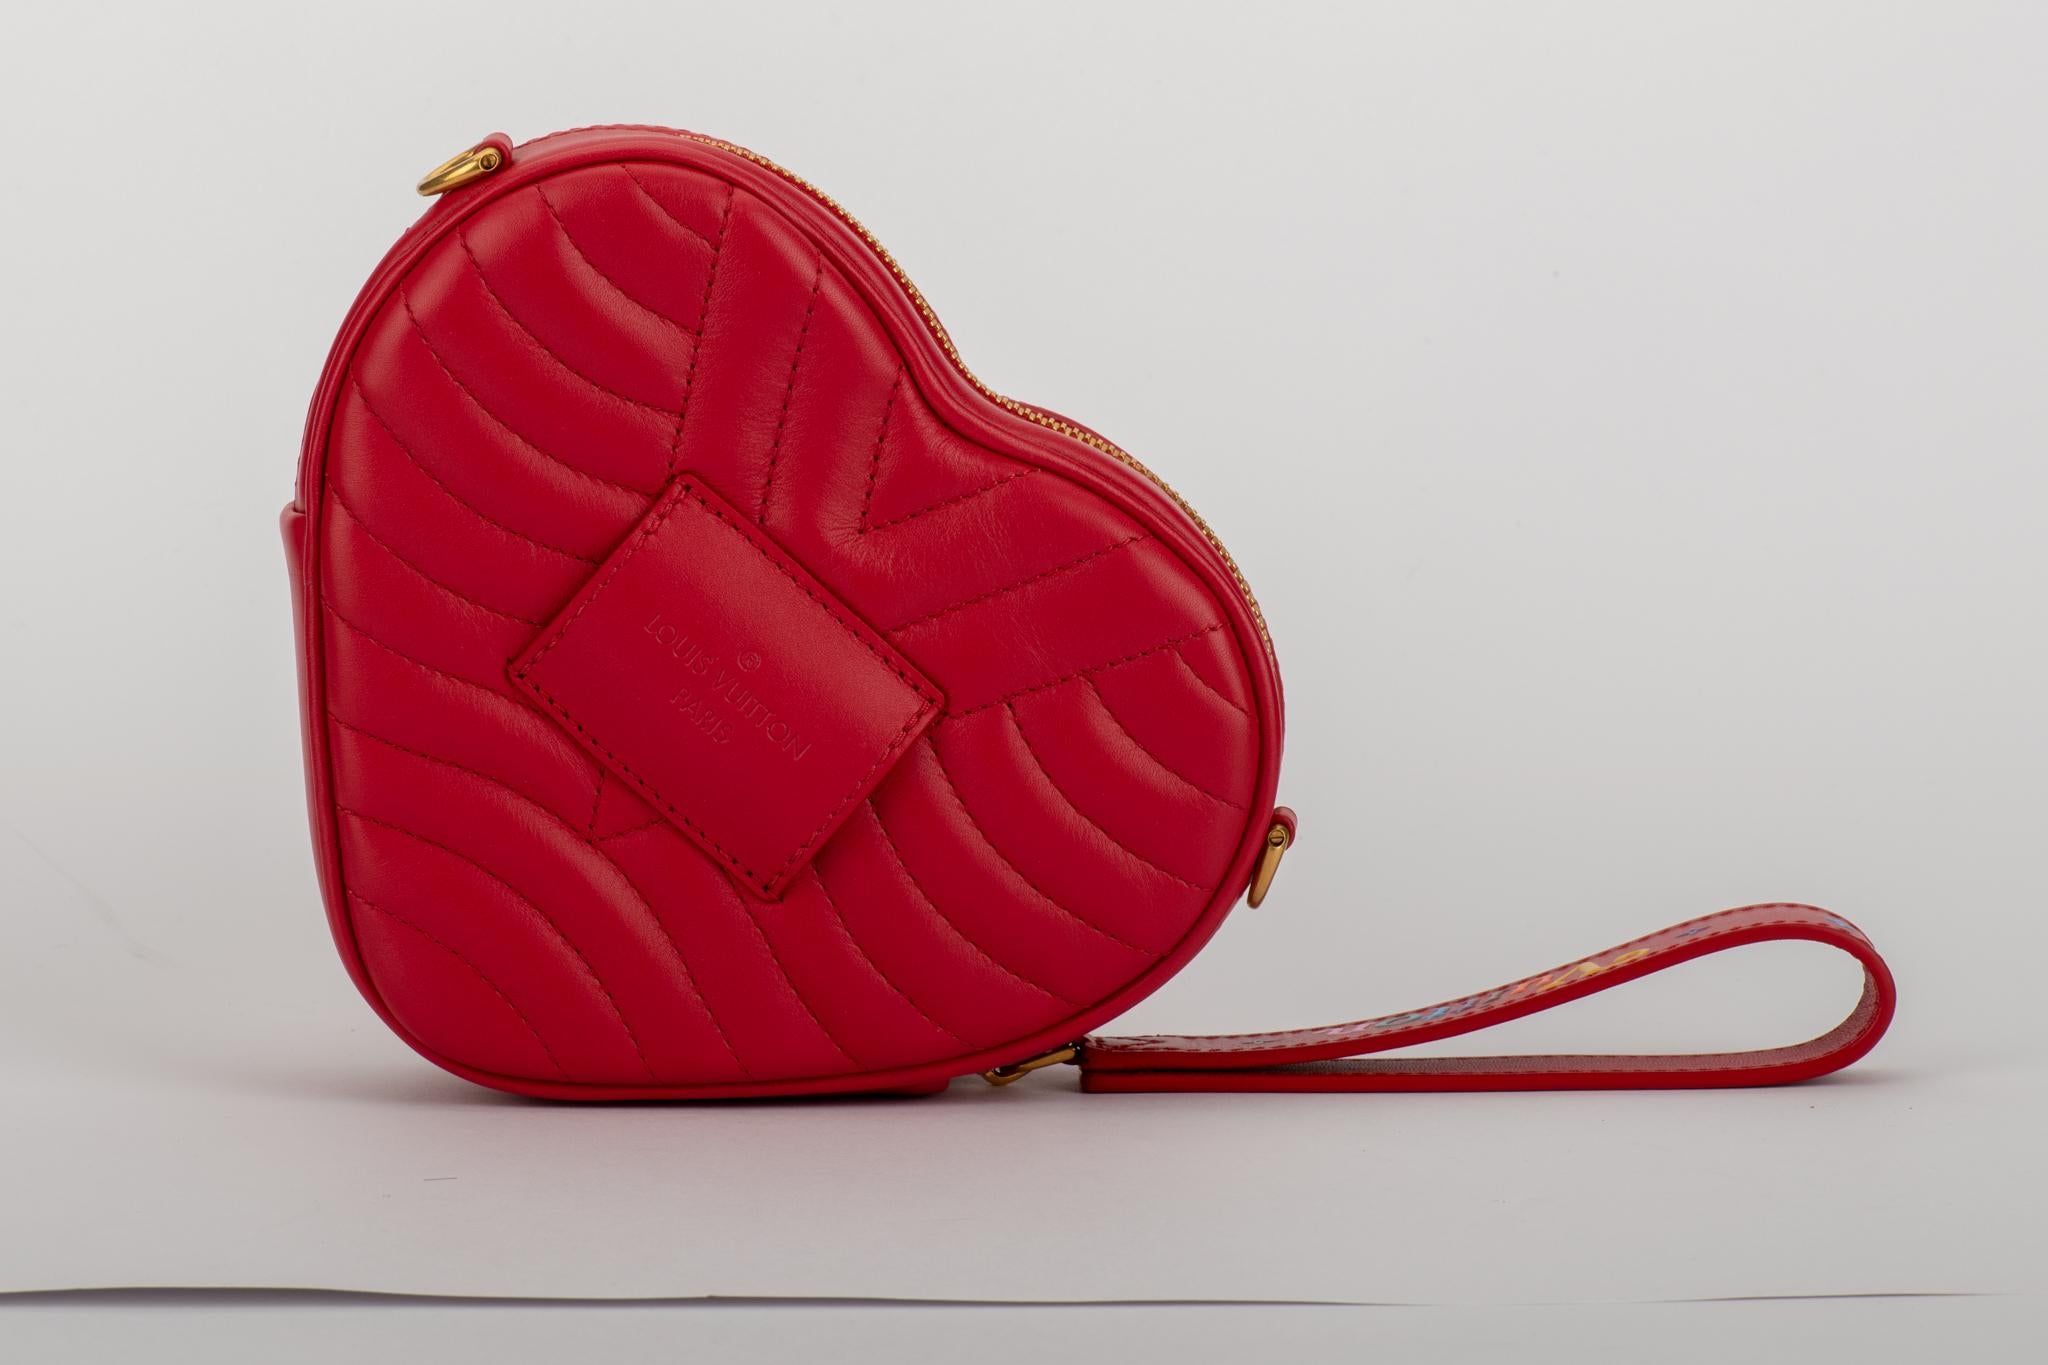 59dfb09850bc New in Box Vuitton Limited Edition Red Heart Charm Handbag Clutch Belt Bag  For Sale at 1stdibs